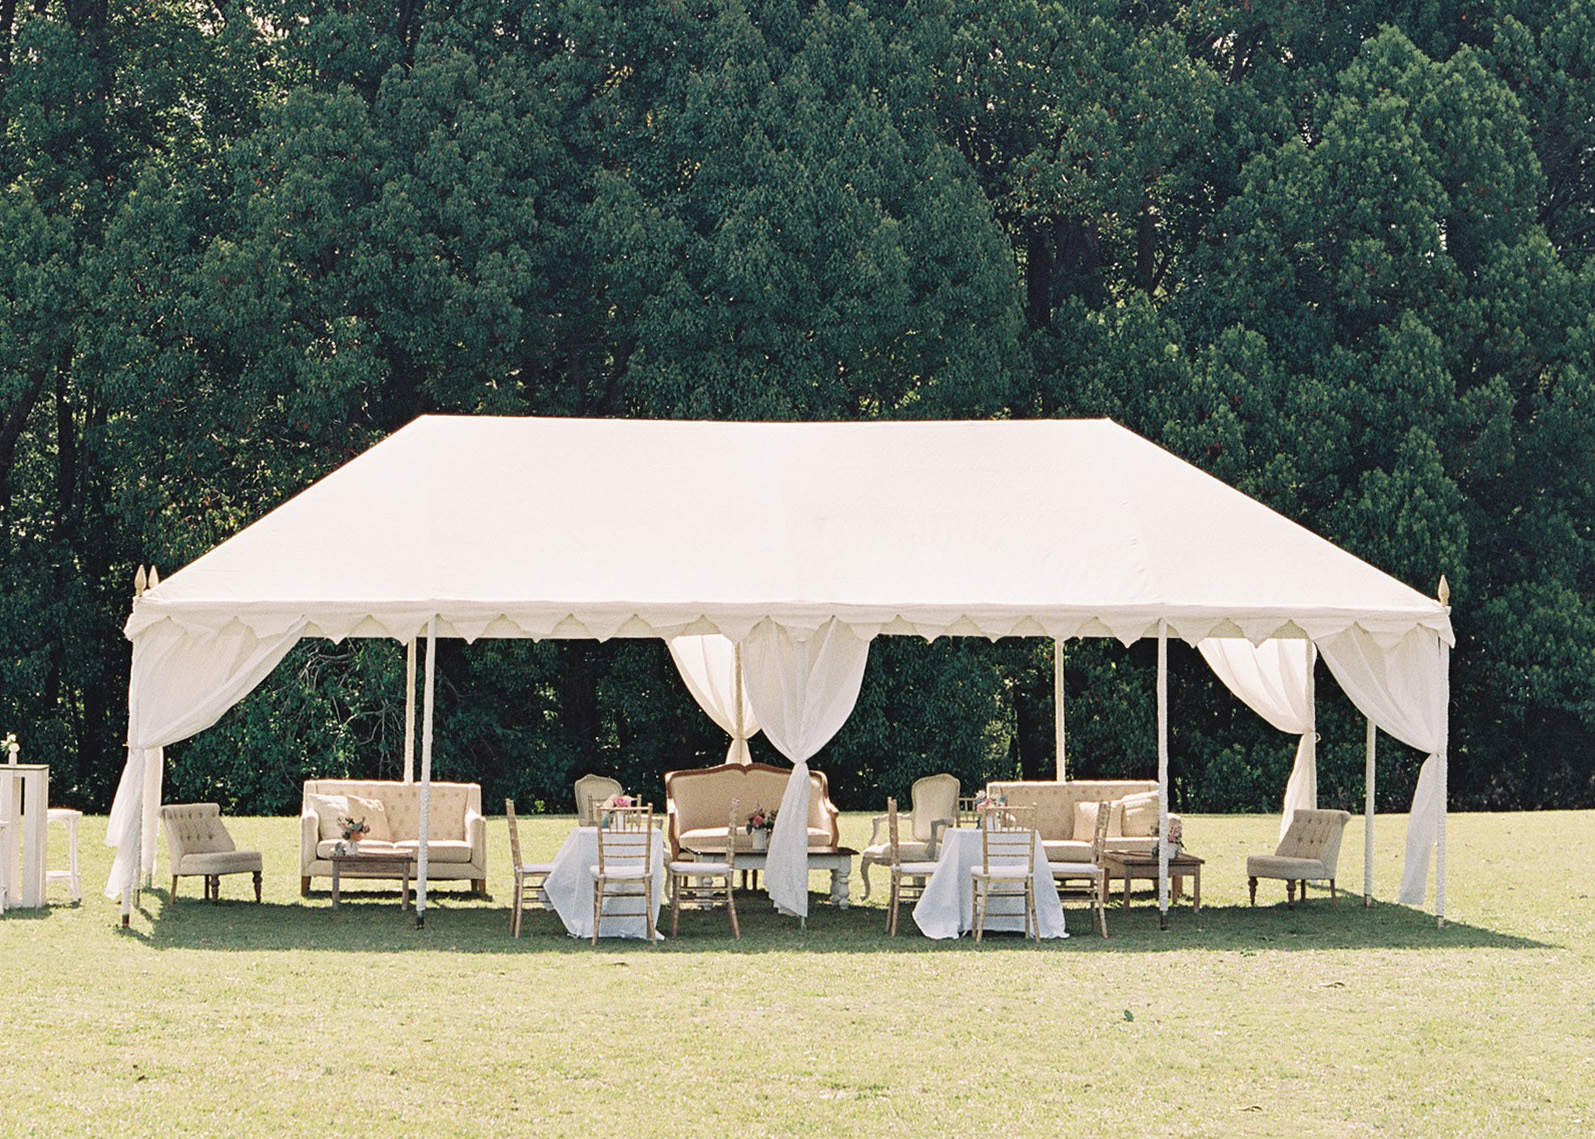 gold coast tipi marquee hire